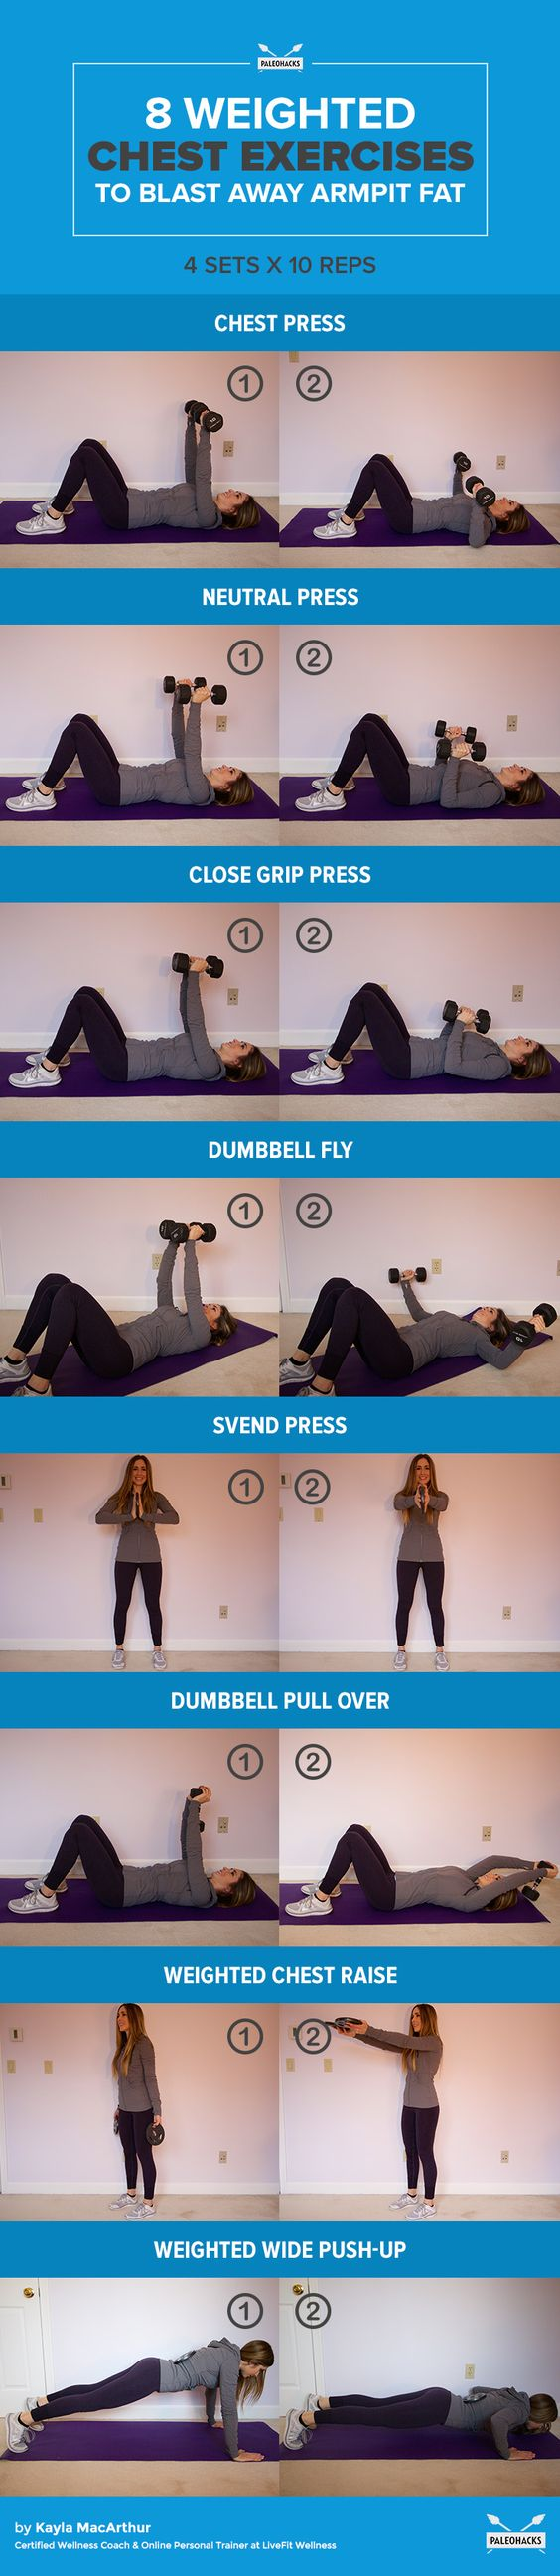 Blast away pesky armpit fat with these killer chest exercises you can do at…